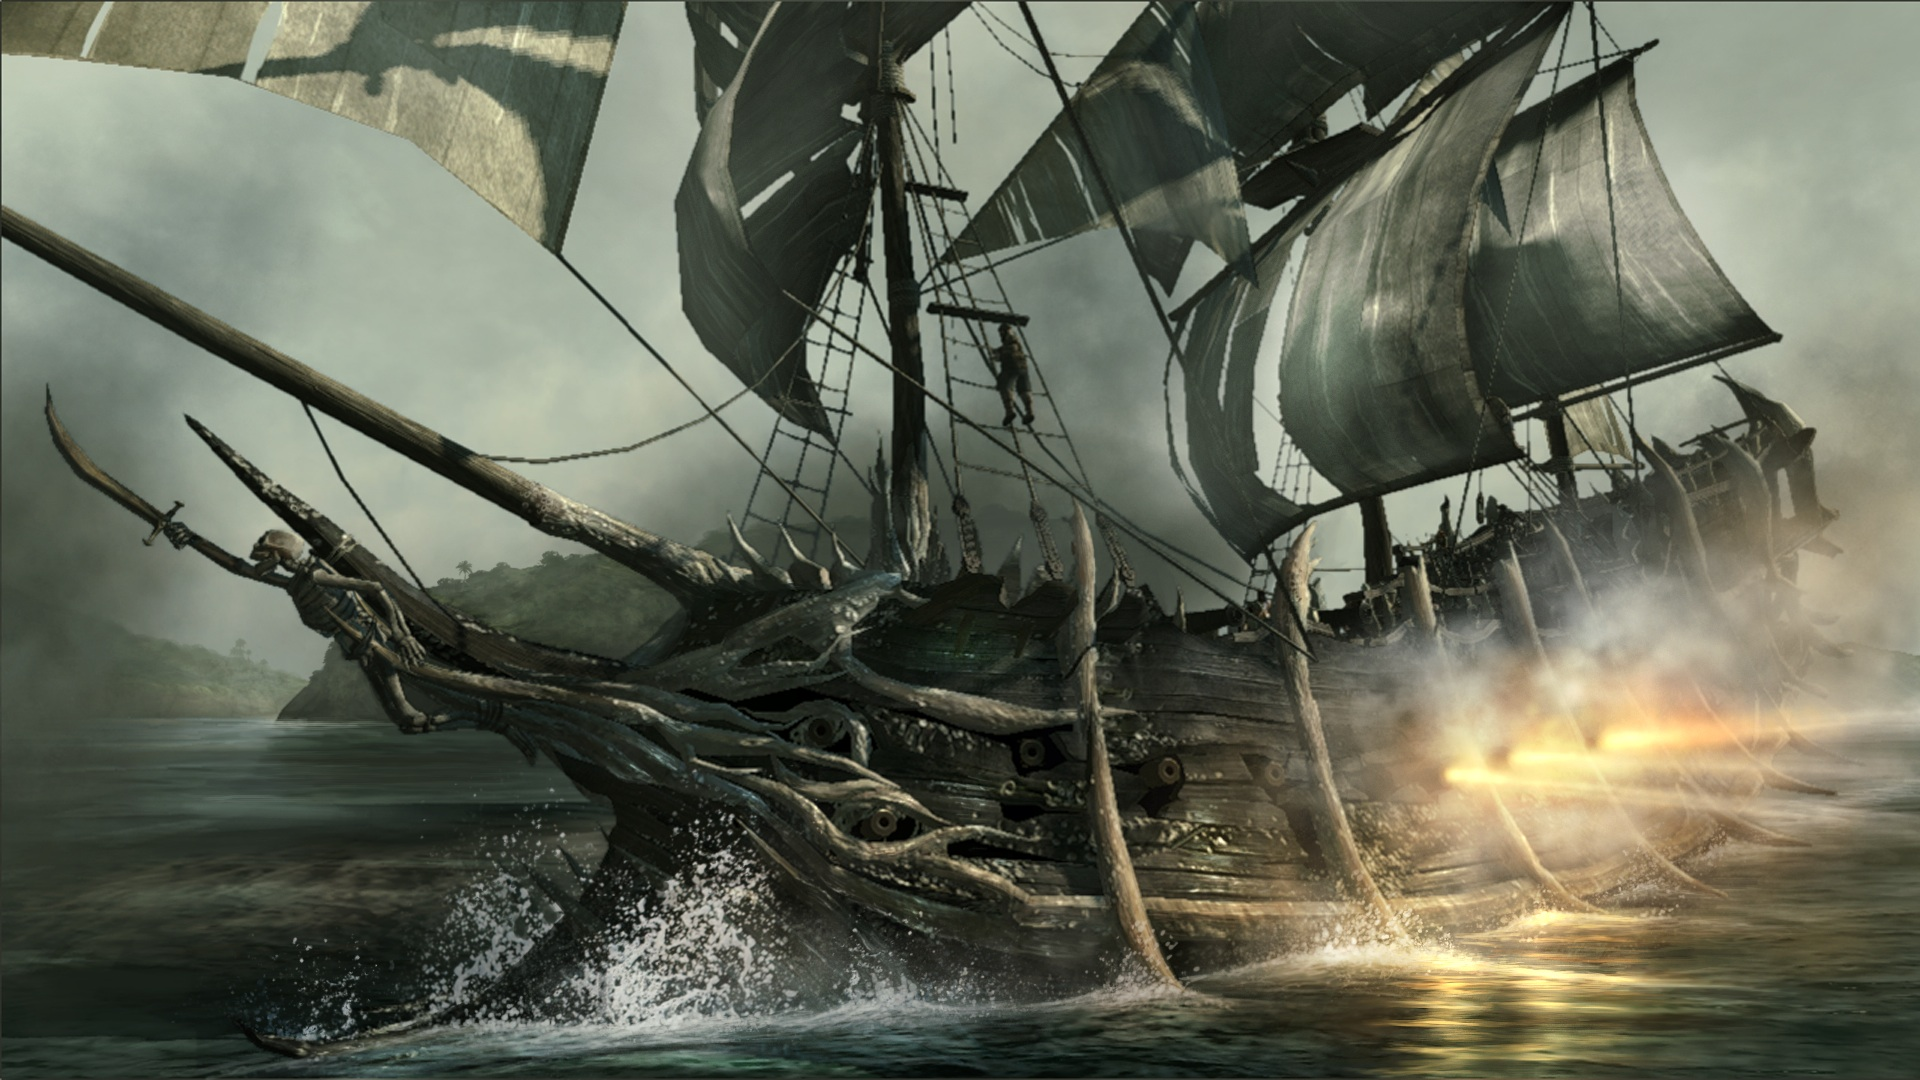 pirate ship computer wallpapers - photo #29